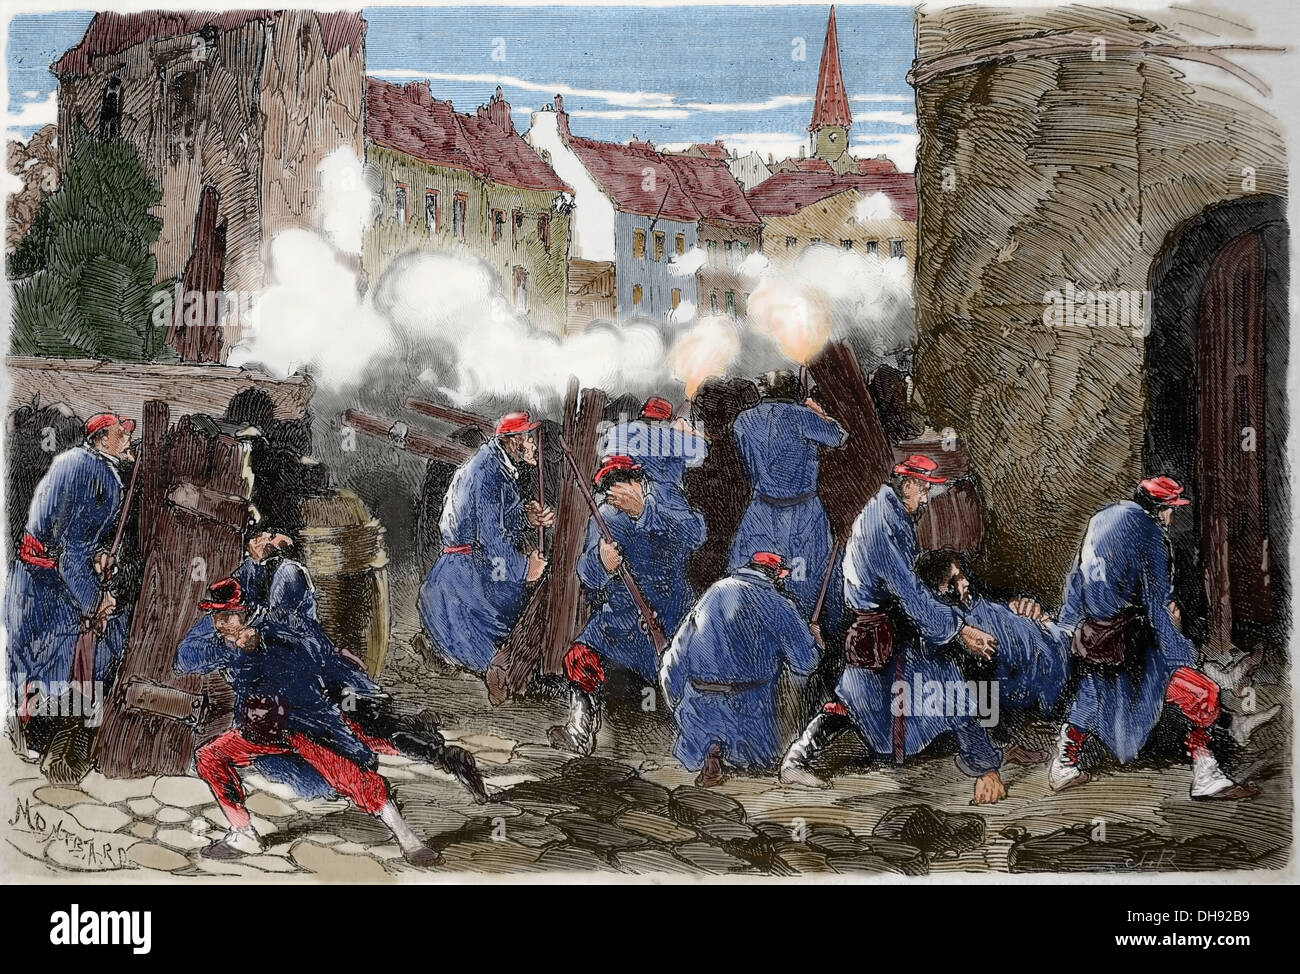 Franco-Prussian War. 1870-1871. Defense of Paris. 19th of January. 13 battalion of National Guard in barricade. - Stock Image